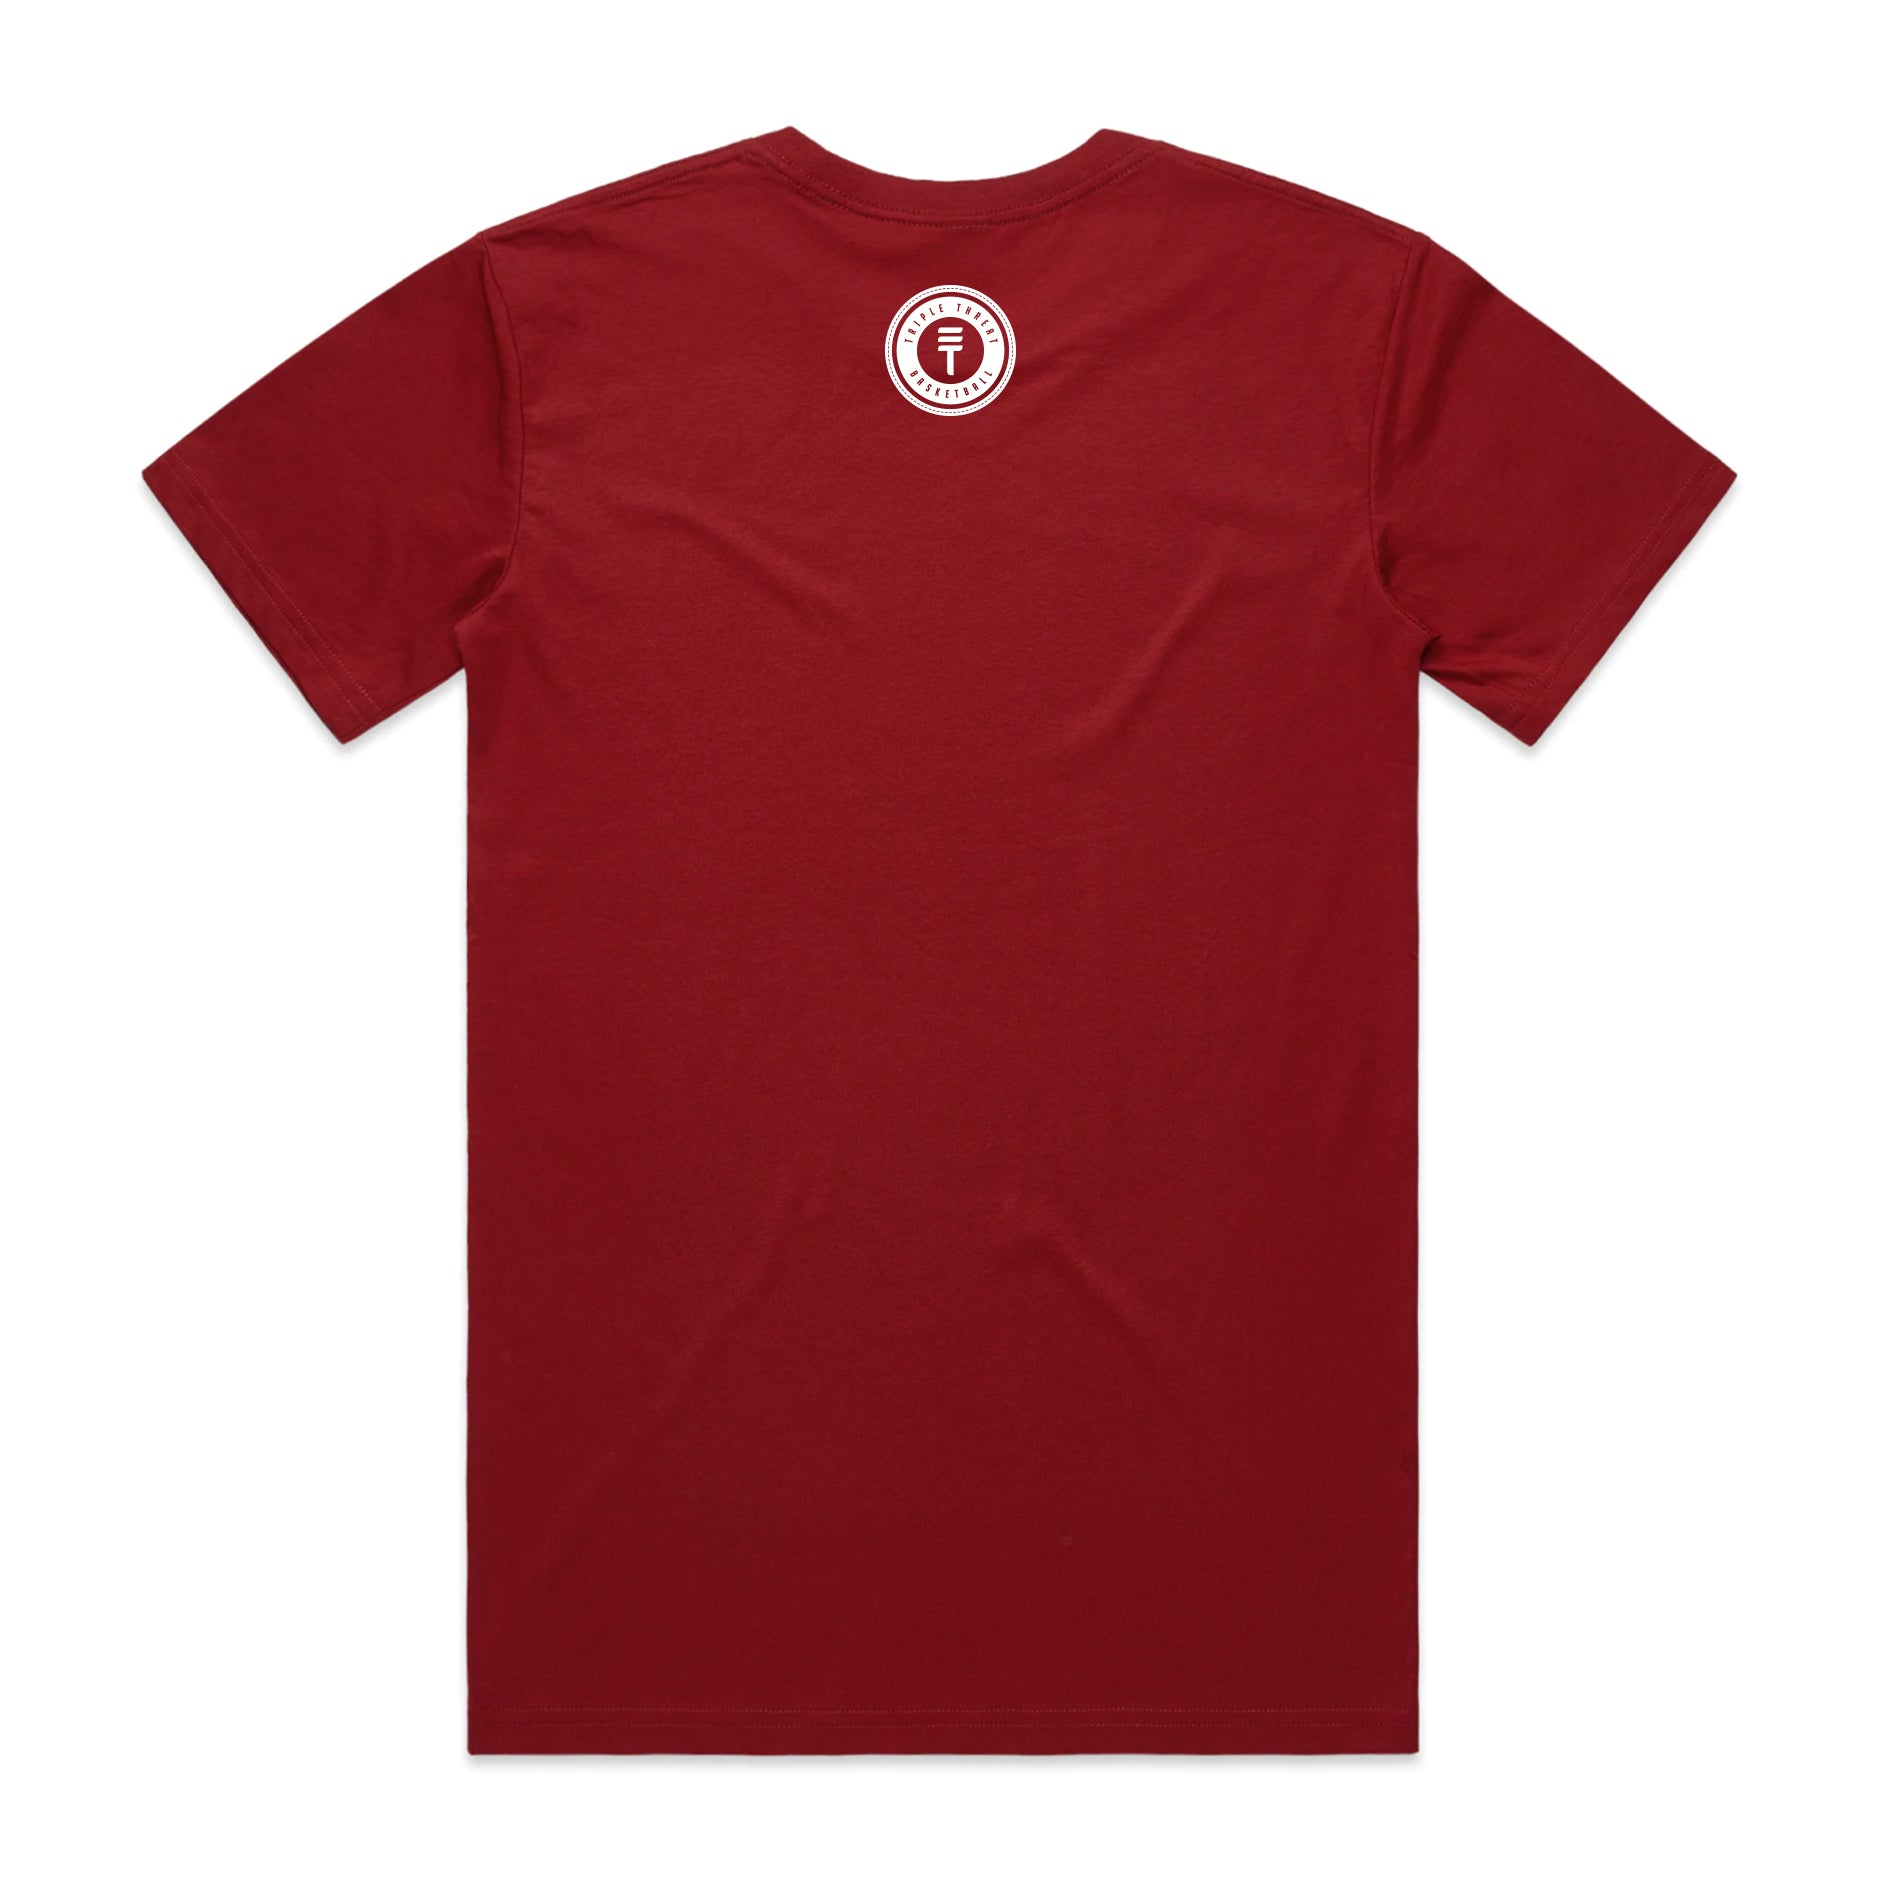 WELLINGTON T-SHIRT - DARK RED